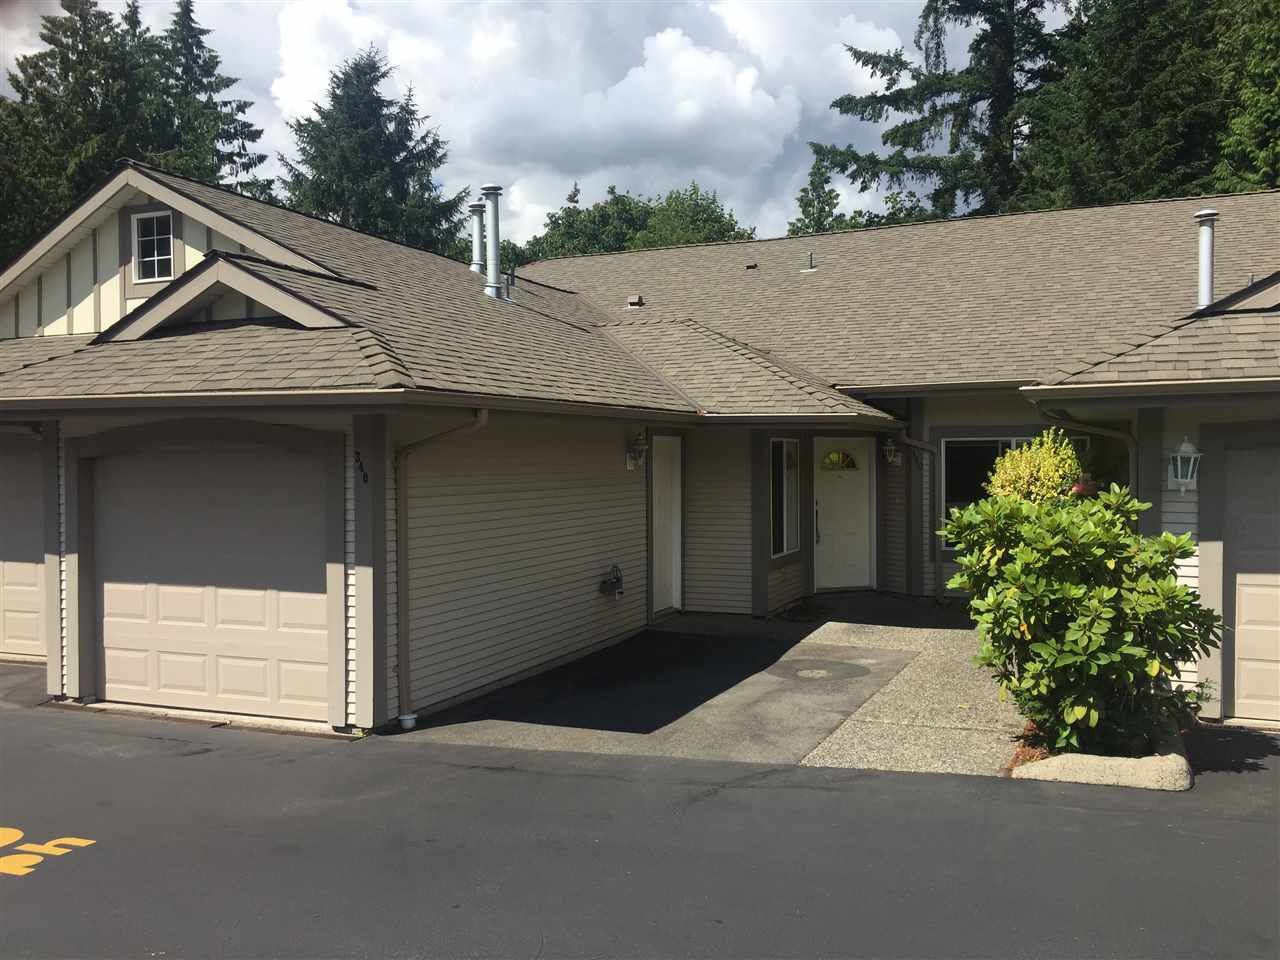 """Main Photo: 340 20655 88 Avenue in Langley: Walnut Grove Townhouse for sale in """"TWIN LAKES"""" : MLS®# R2260164"""